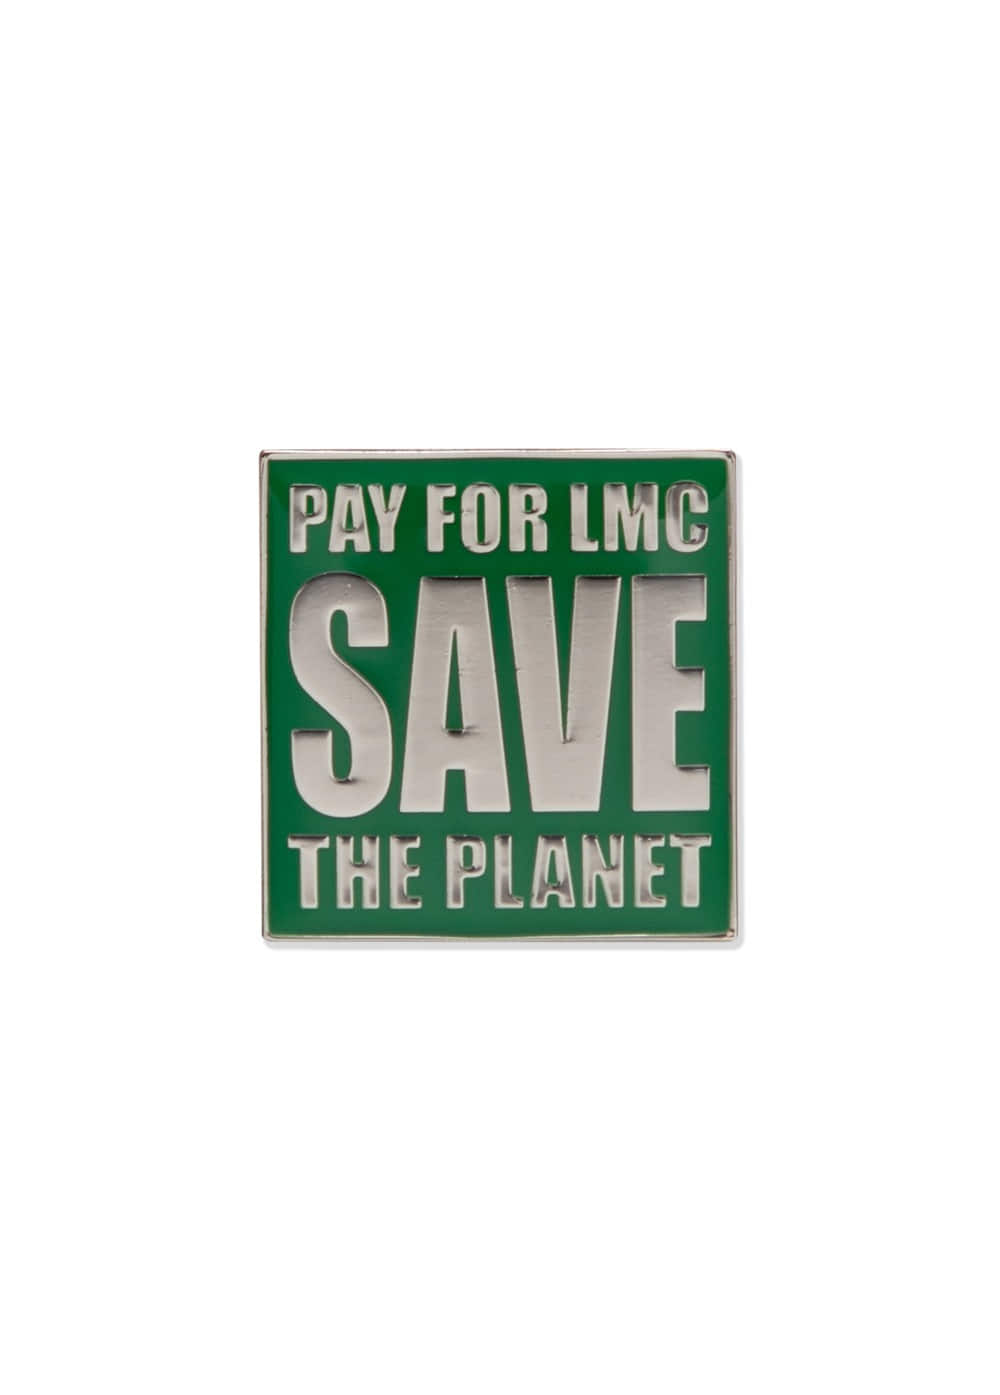 LMC SAVE PIN BADGE